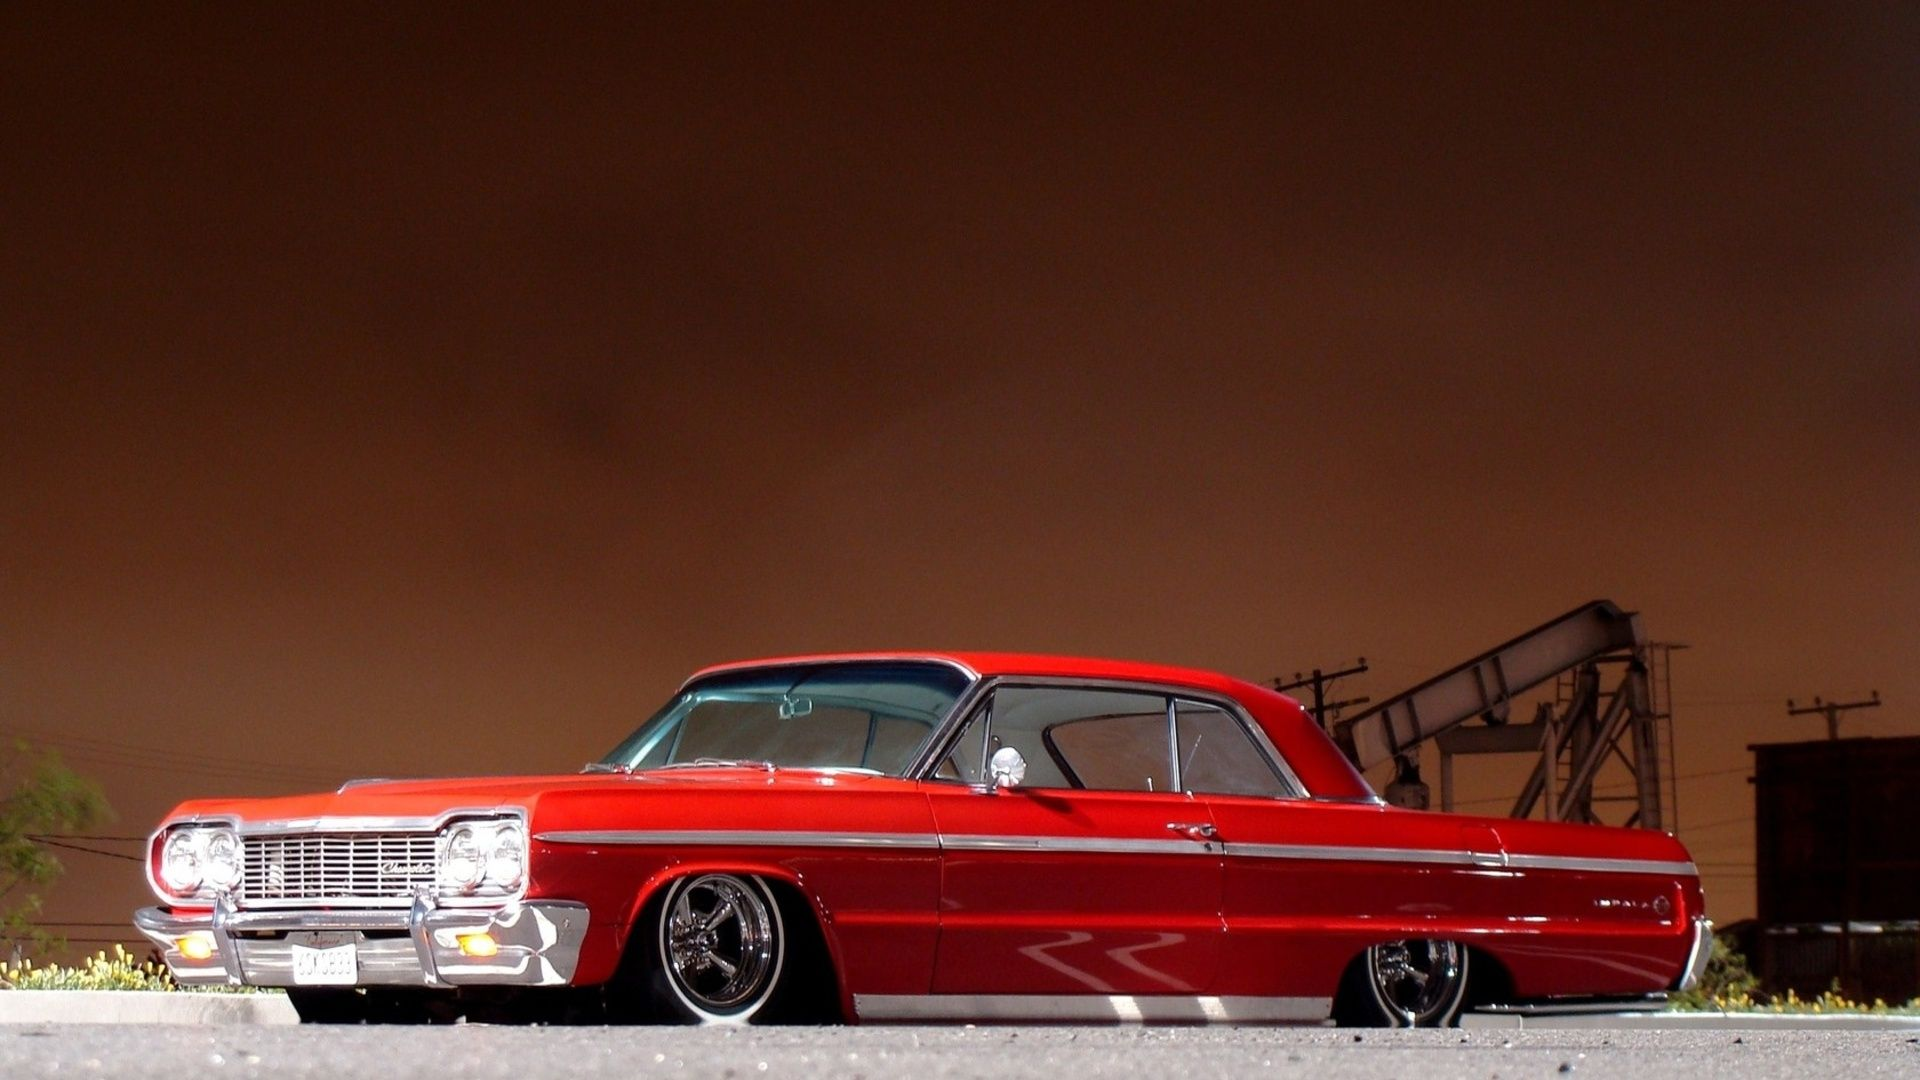 Chevrolet Impala Tuning Low Red Classic Muscle Cars Wallpaper ...